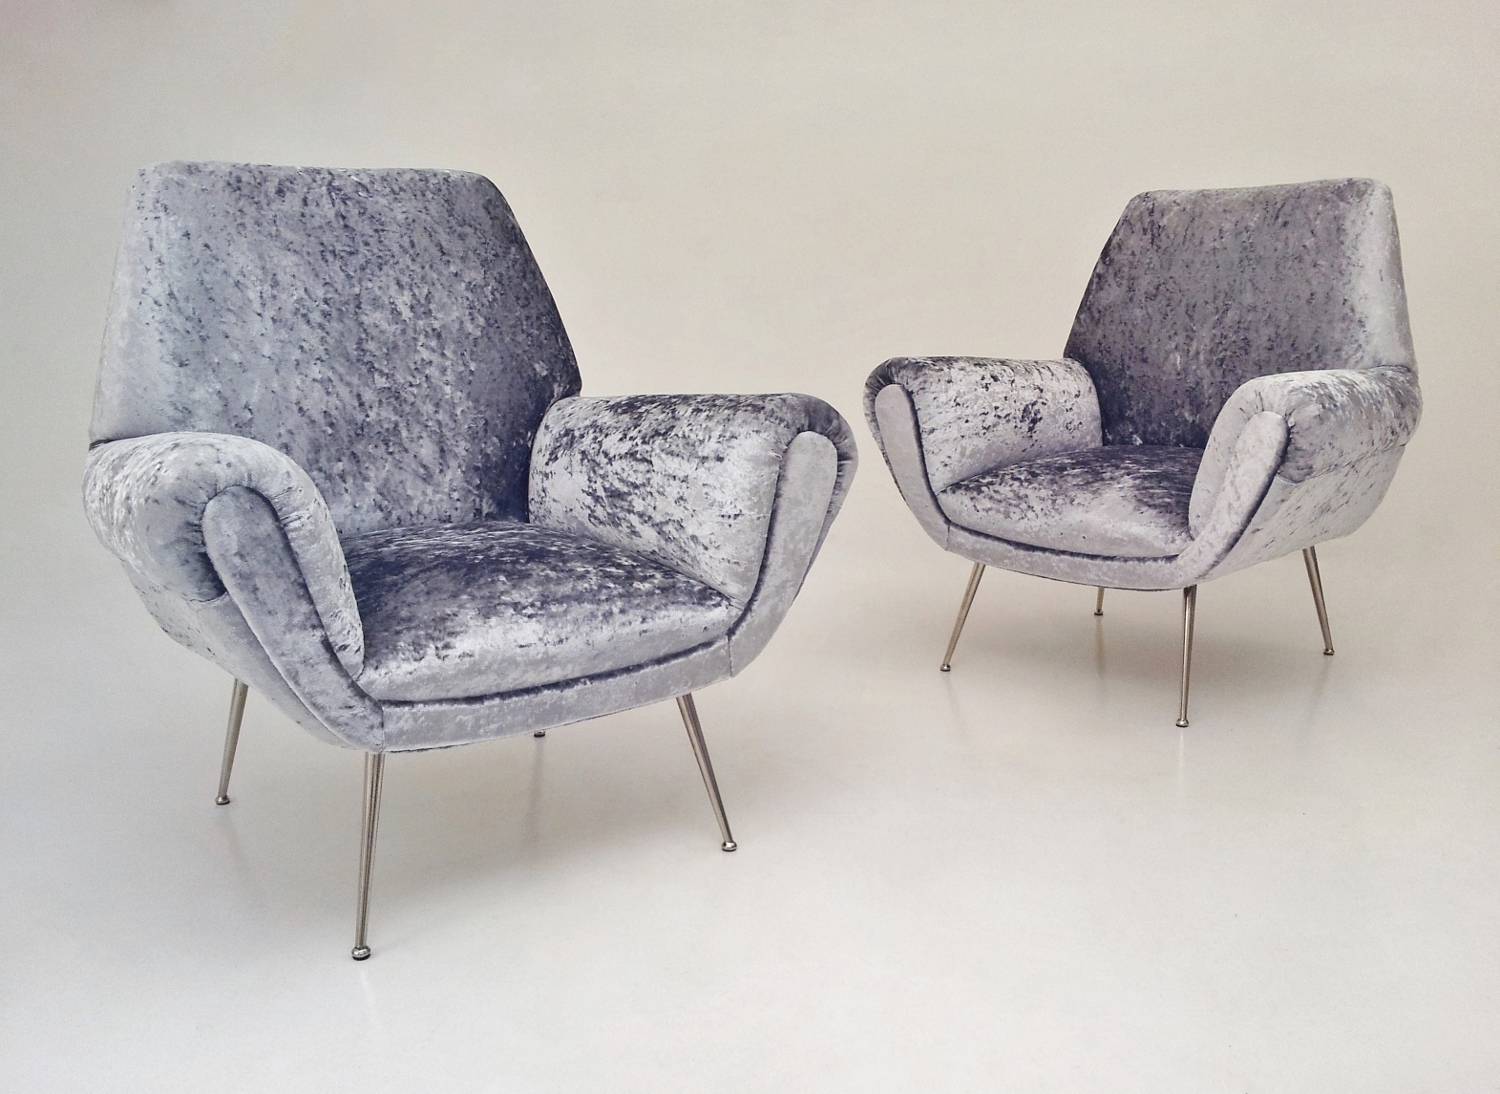 Saporiti Vintage Pair Armchairs Sculptural Reupholstered In Silver/grey  Velvet, 1950`s Ca, Italian In Vintage Armchairs From Roomscape